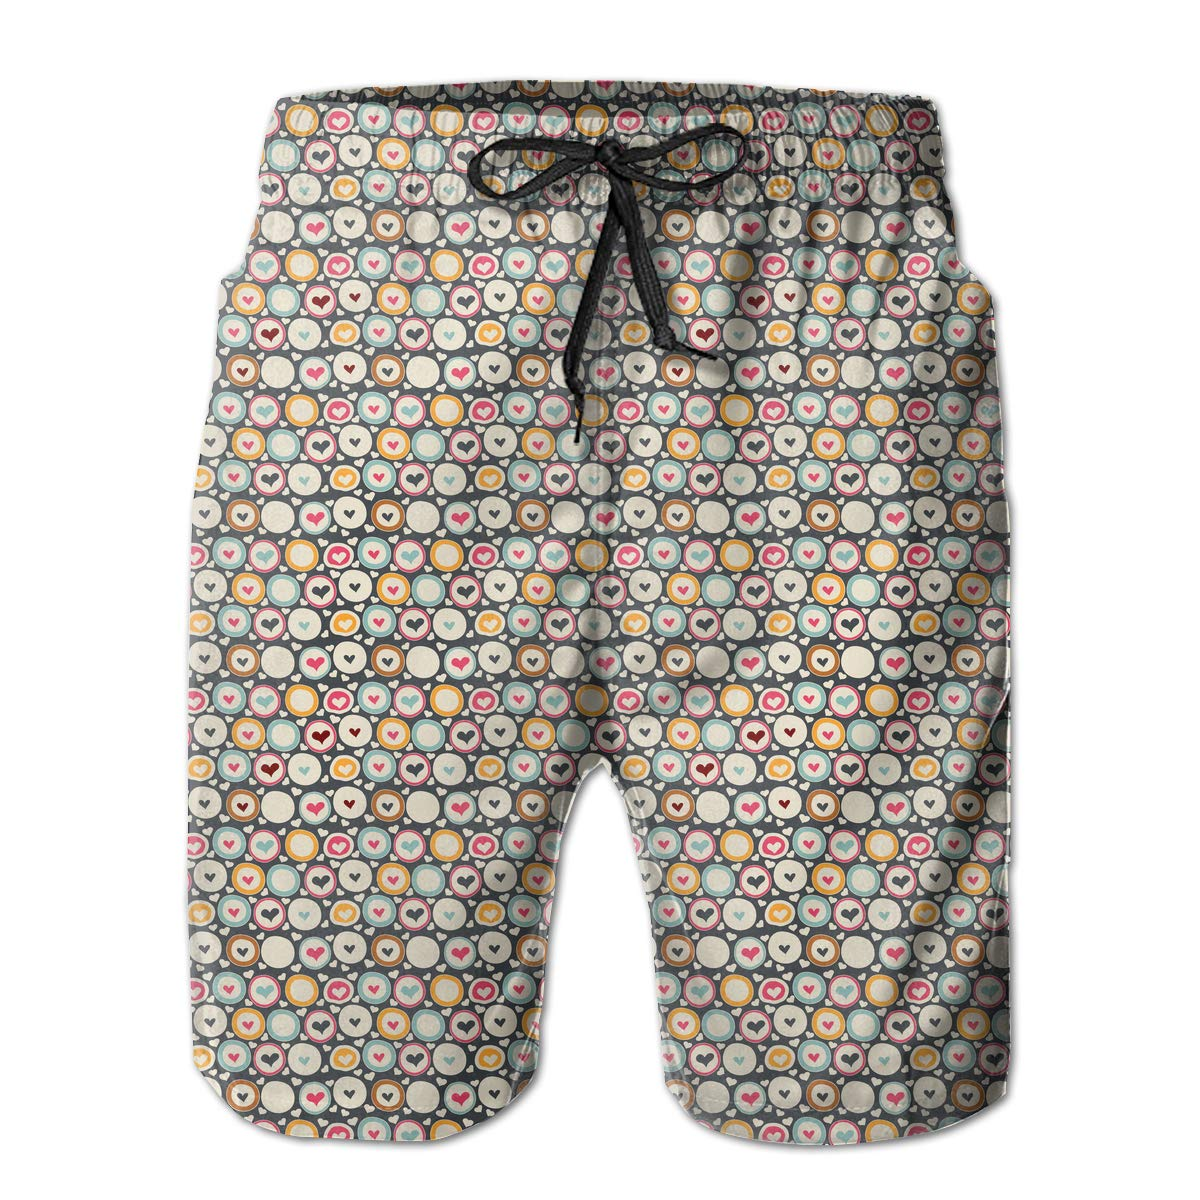 Hearts in Circles Pattern Mens Fashion Beach Board Shorts Slim-Fit Pockets Bathing Suit